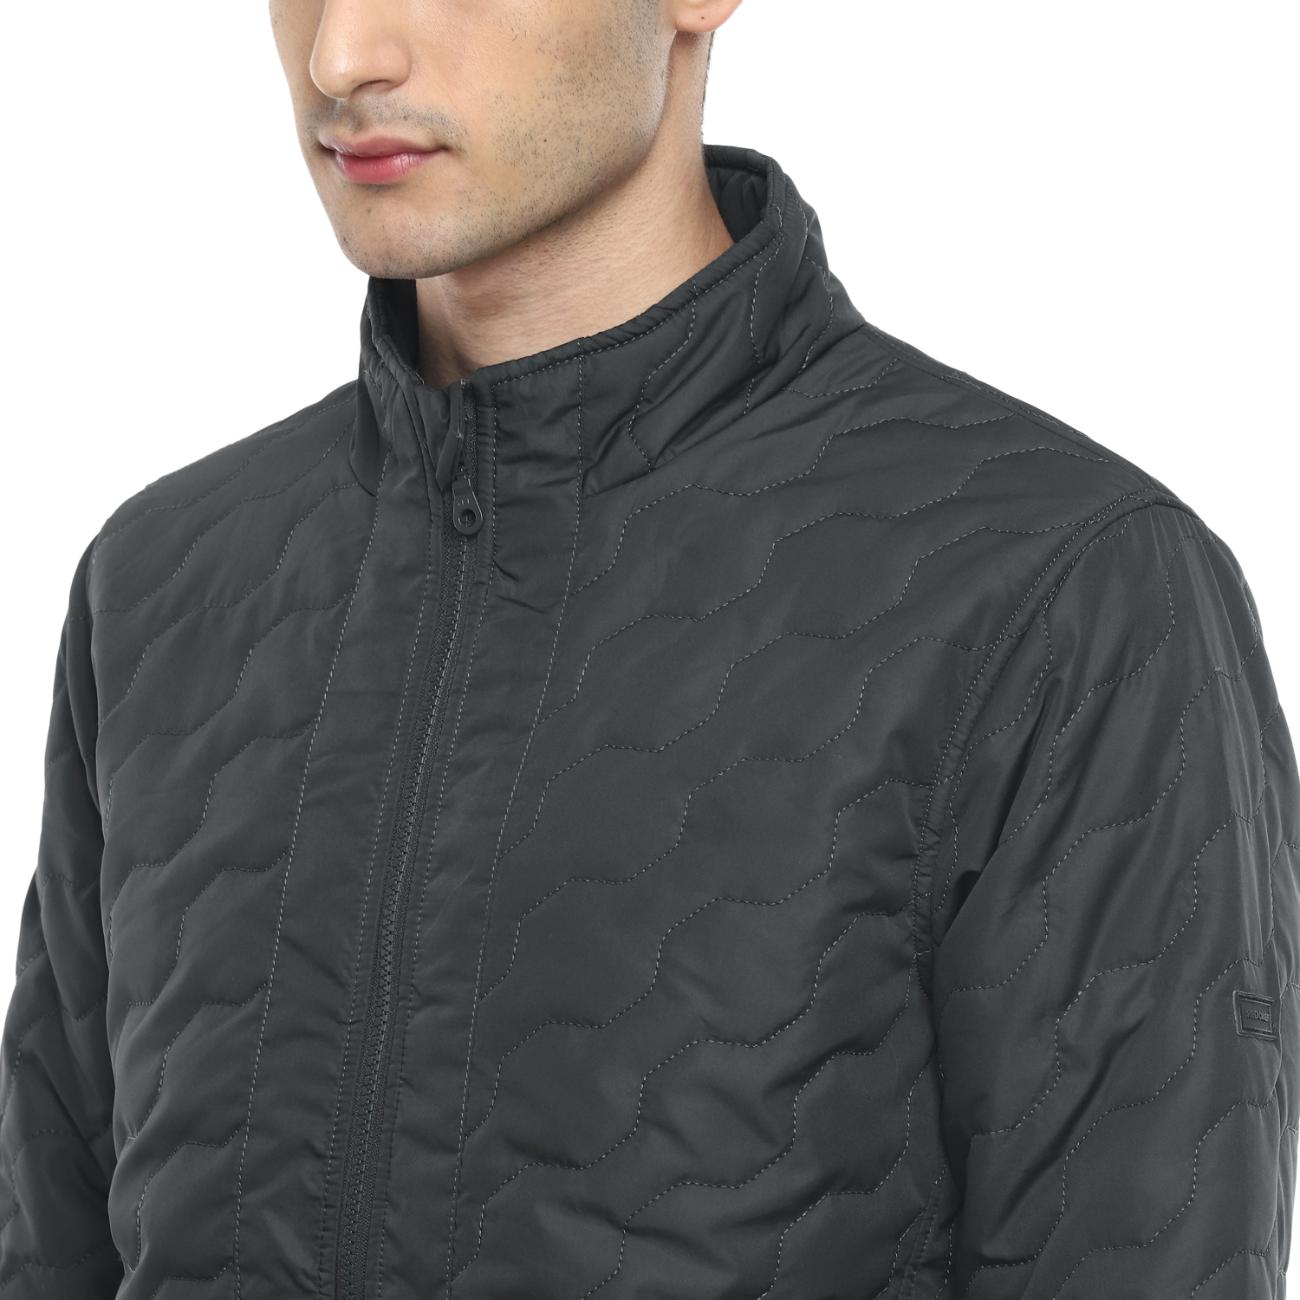 Grey Jacket Online for Men at Red Chief